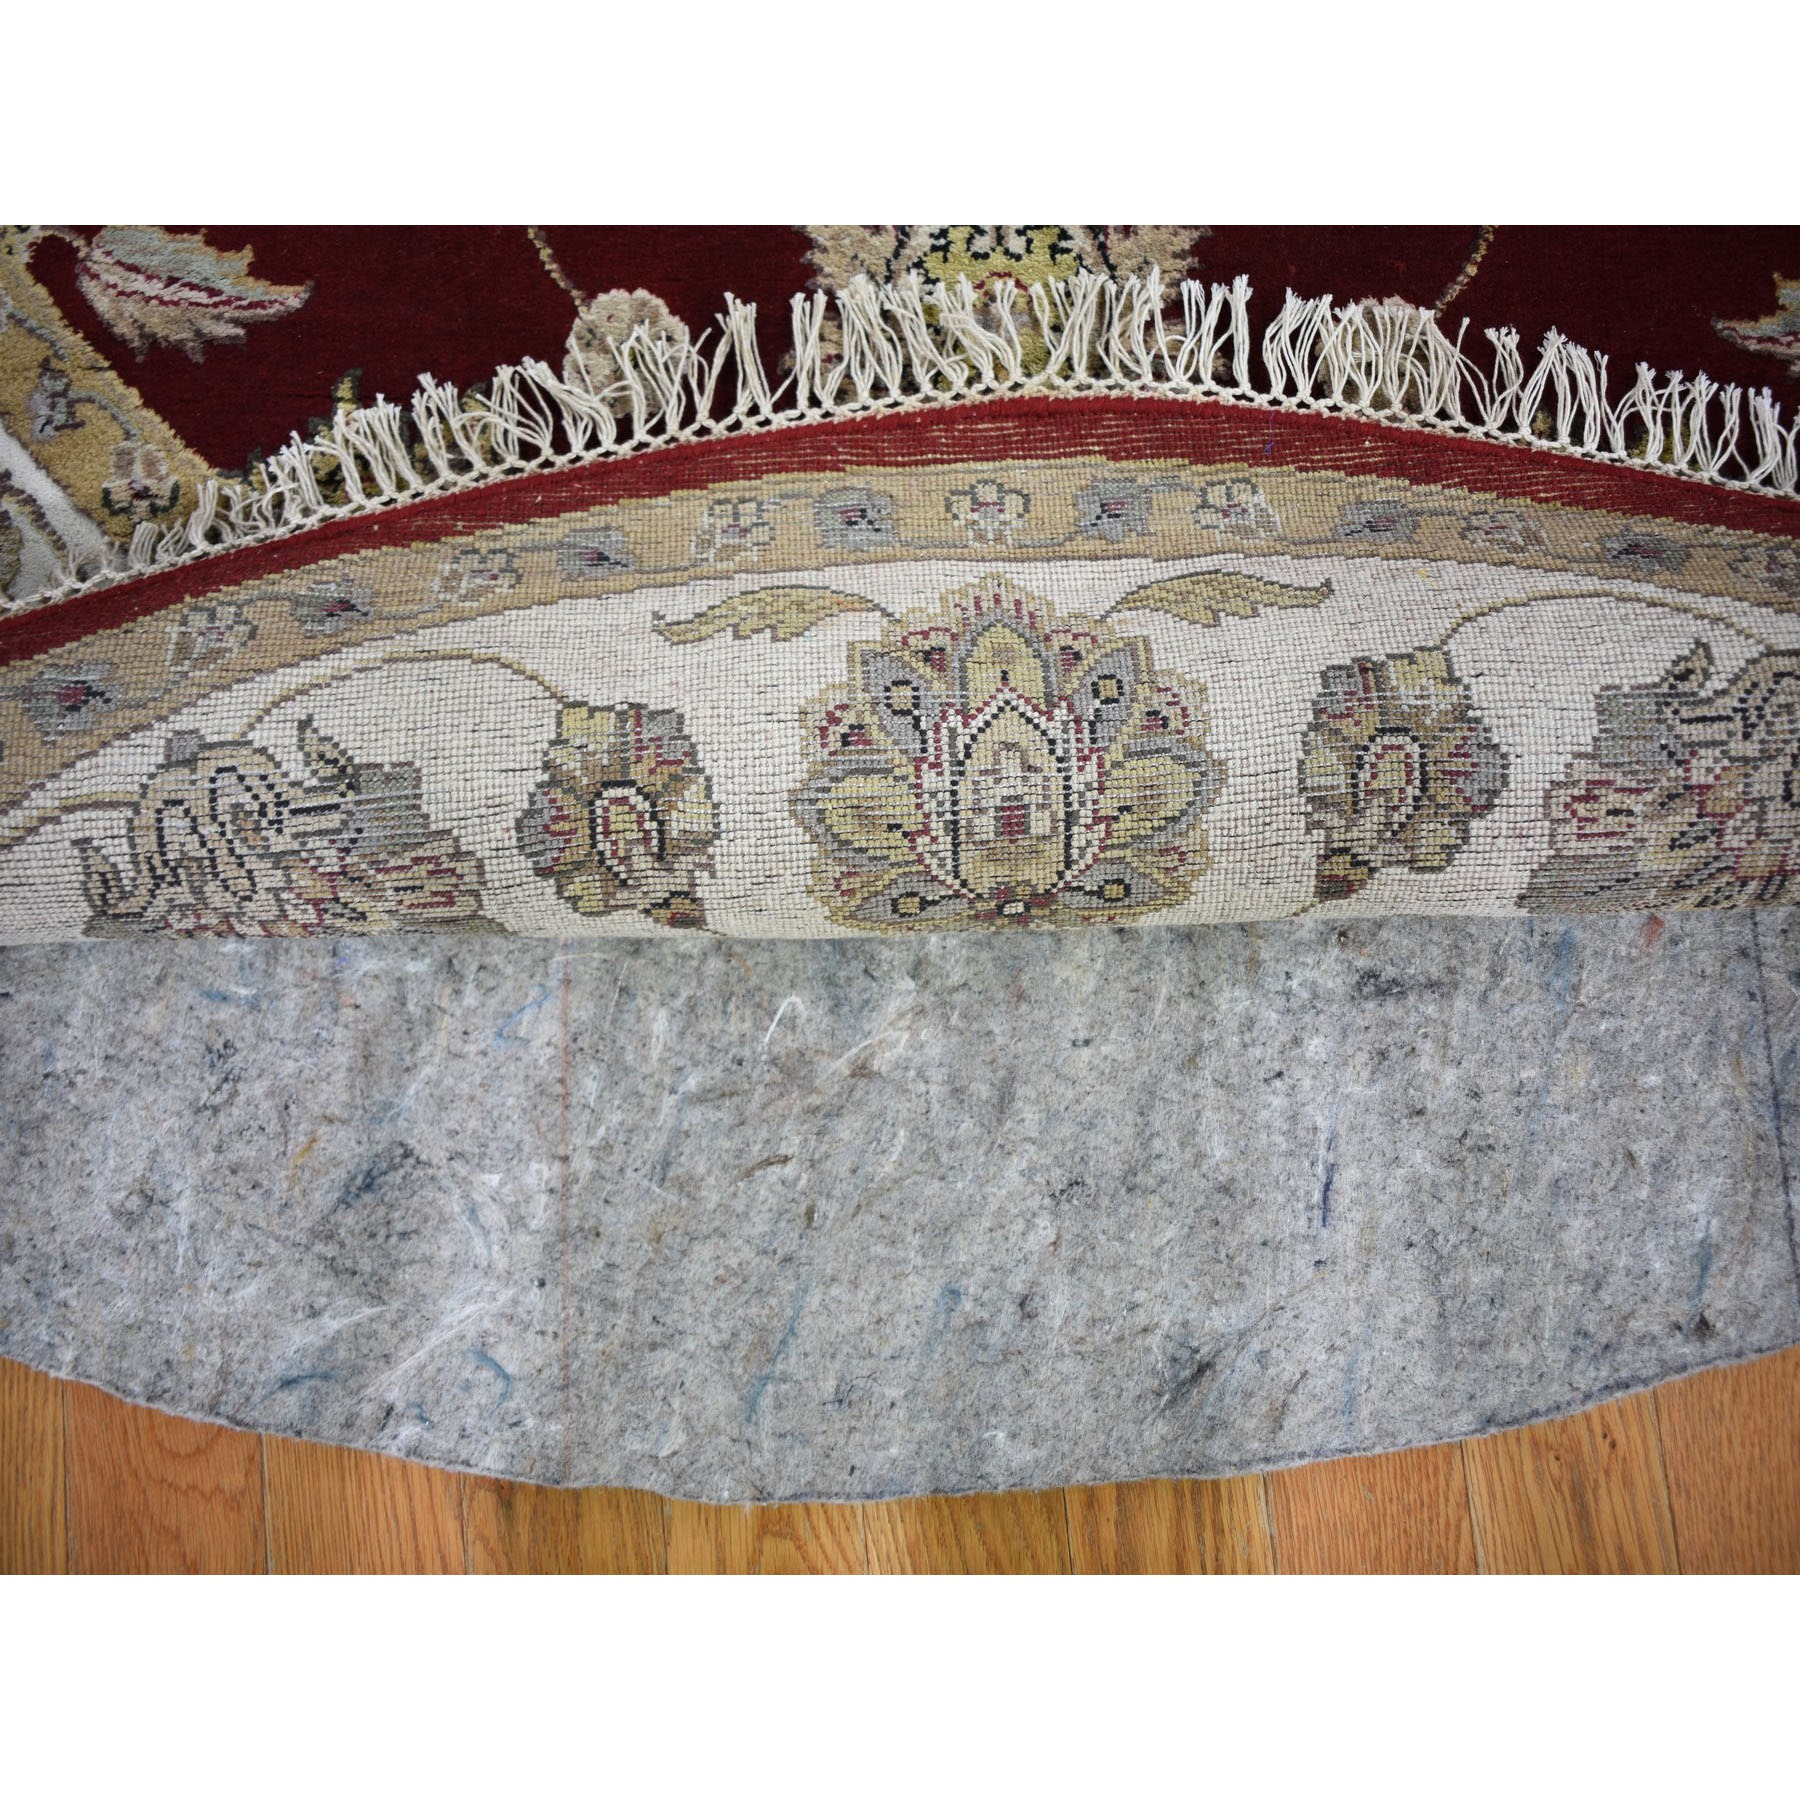 6-x6- Burgundy Half Wool And Half Silk Rajasthan Round Thick And Plush Oriental Hand Knotted Rug